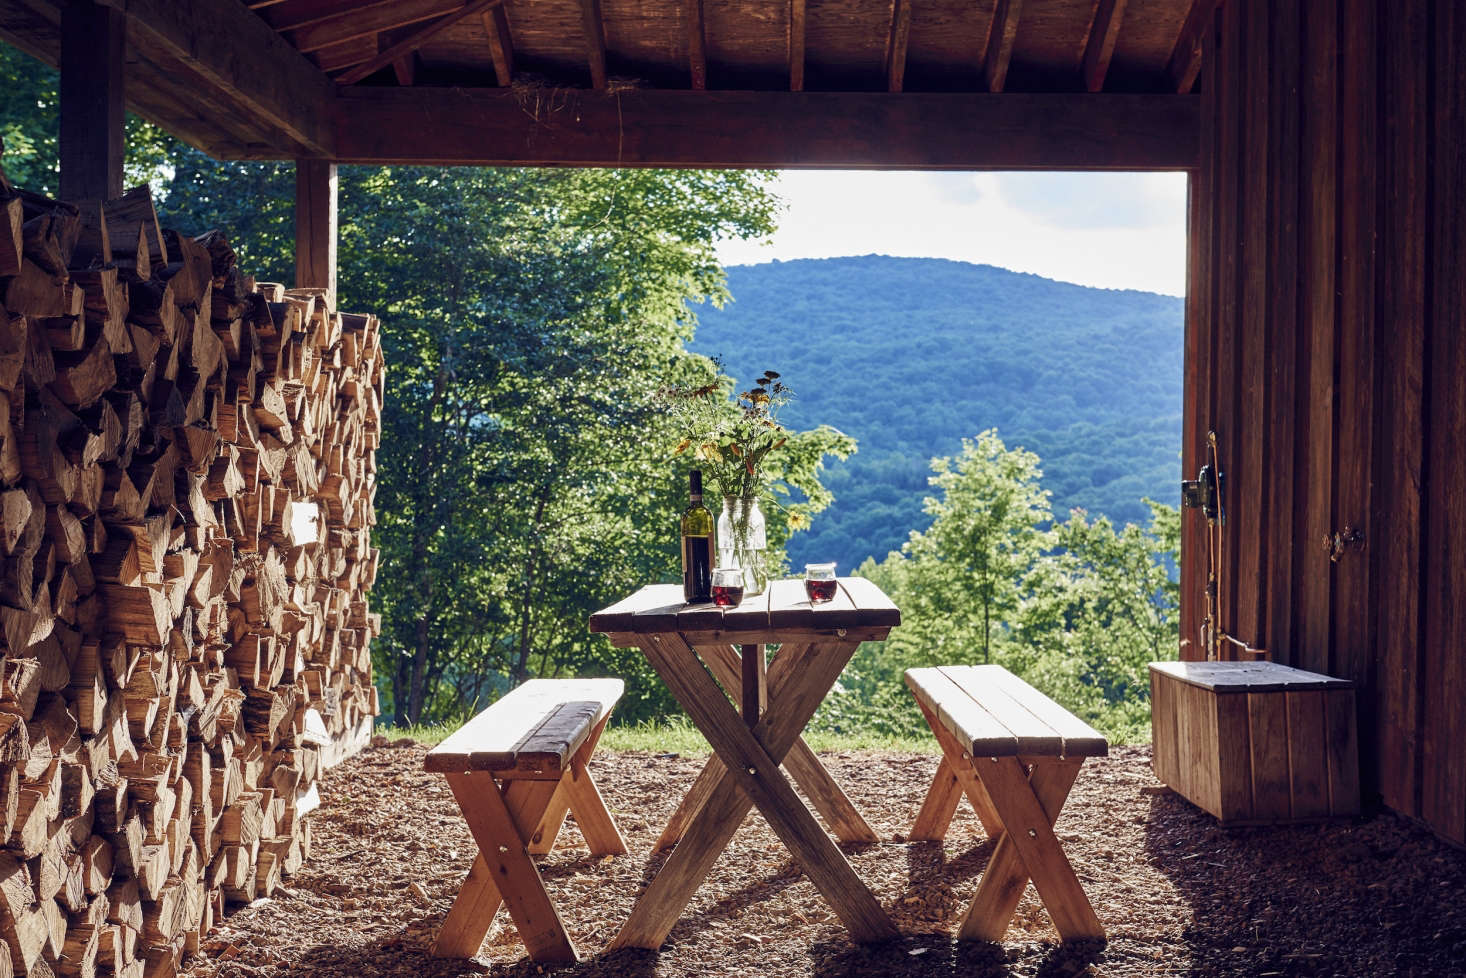 Ahandcrafted picnic table overlooking thevalleyis well-suited to an evening glass of wine.